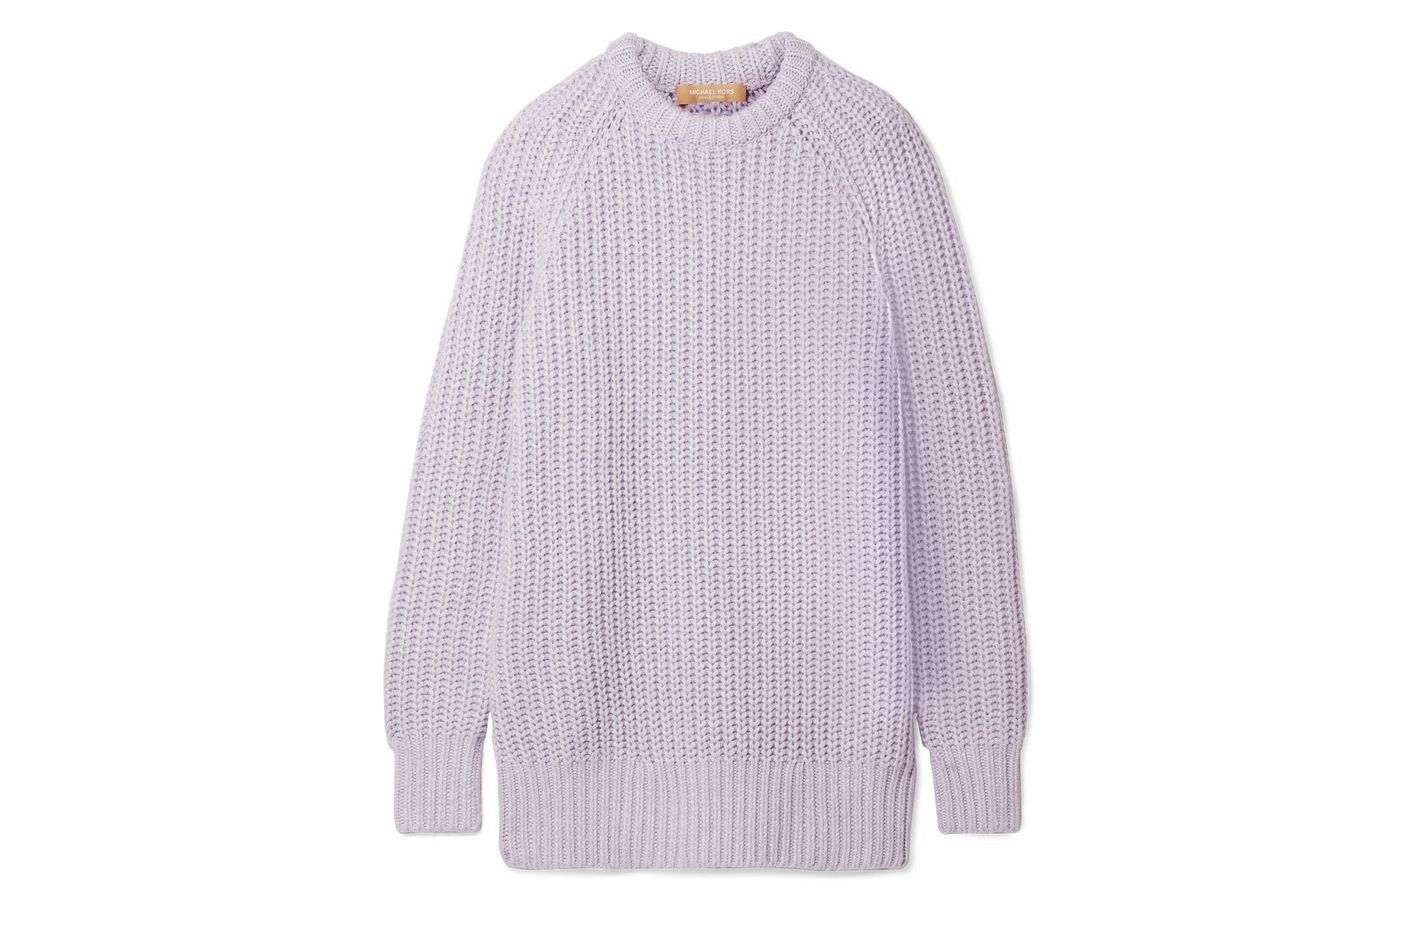 MICHAEL KORS COLLECTION Ribbed cashmere and linen-blend sweater